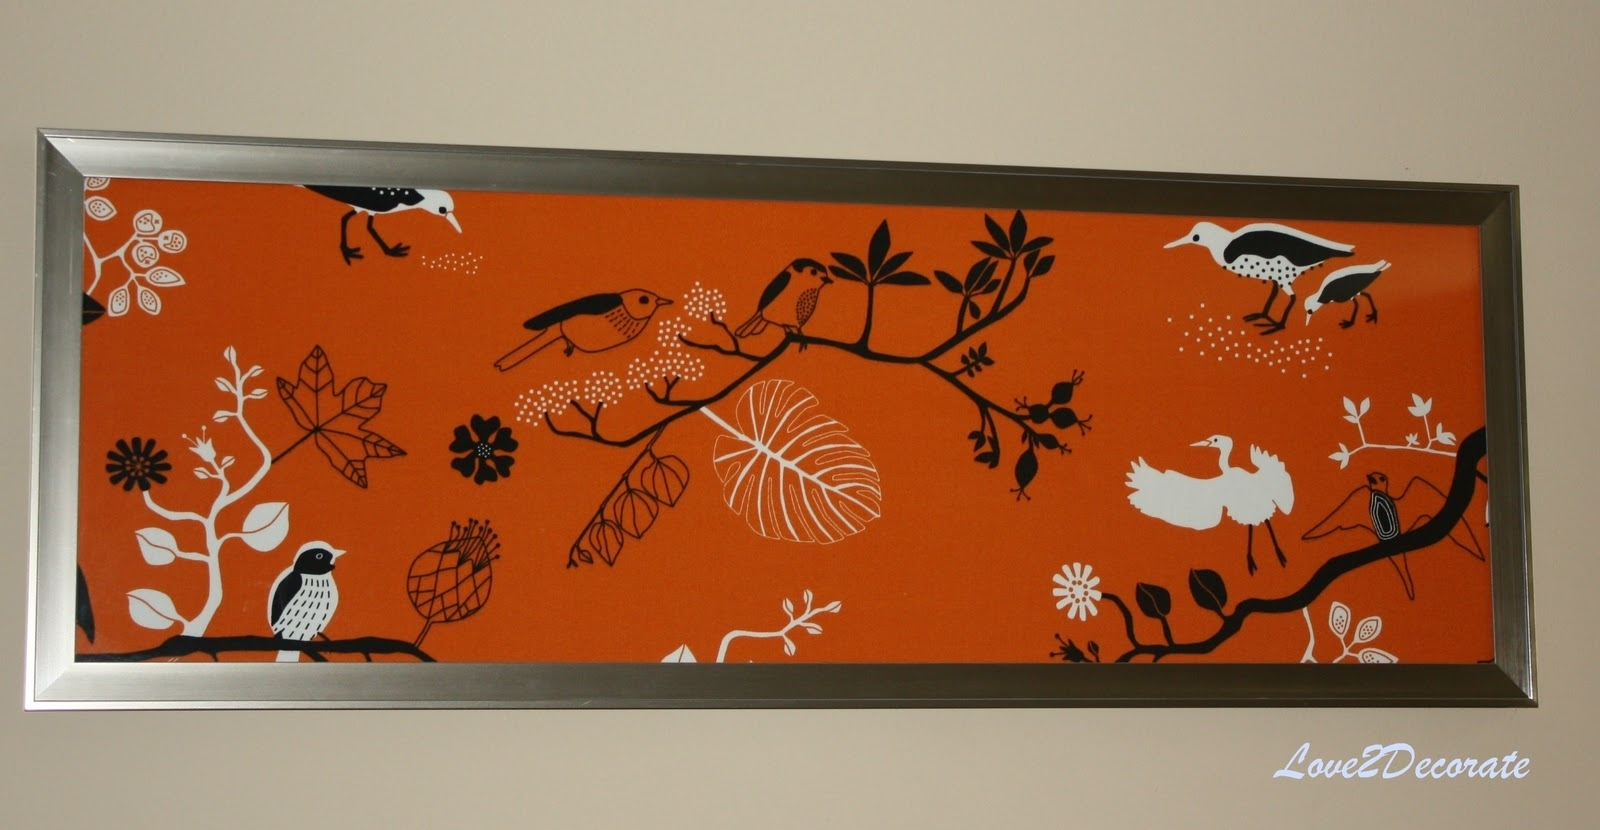 Love 2 Decorate: Frame + Fabric = Wall Art In Current Fabric Covered Frames Wall Art (View 12 of 15)